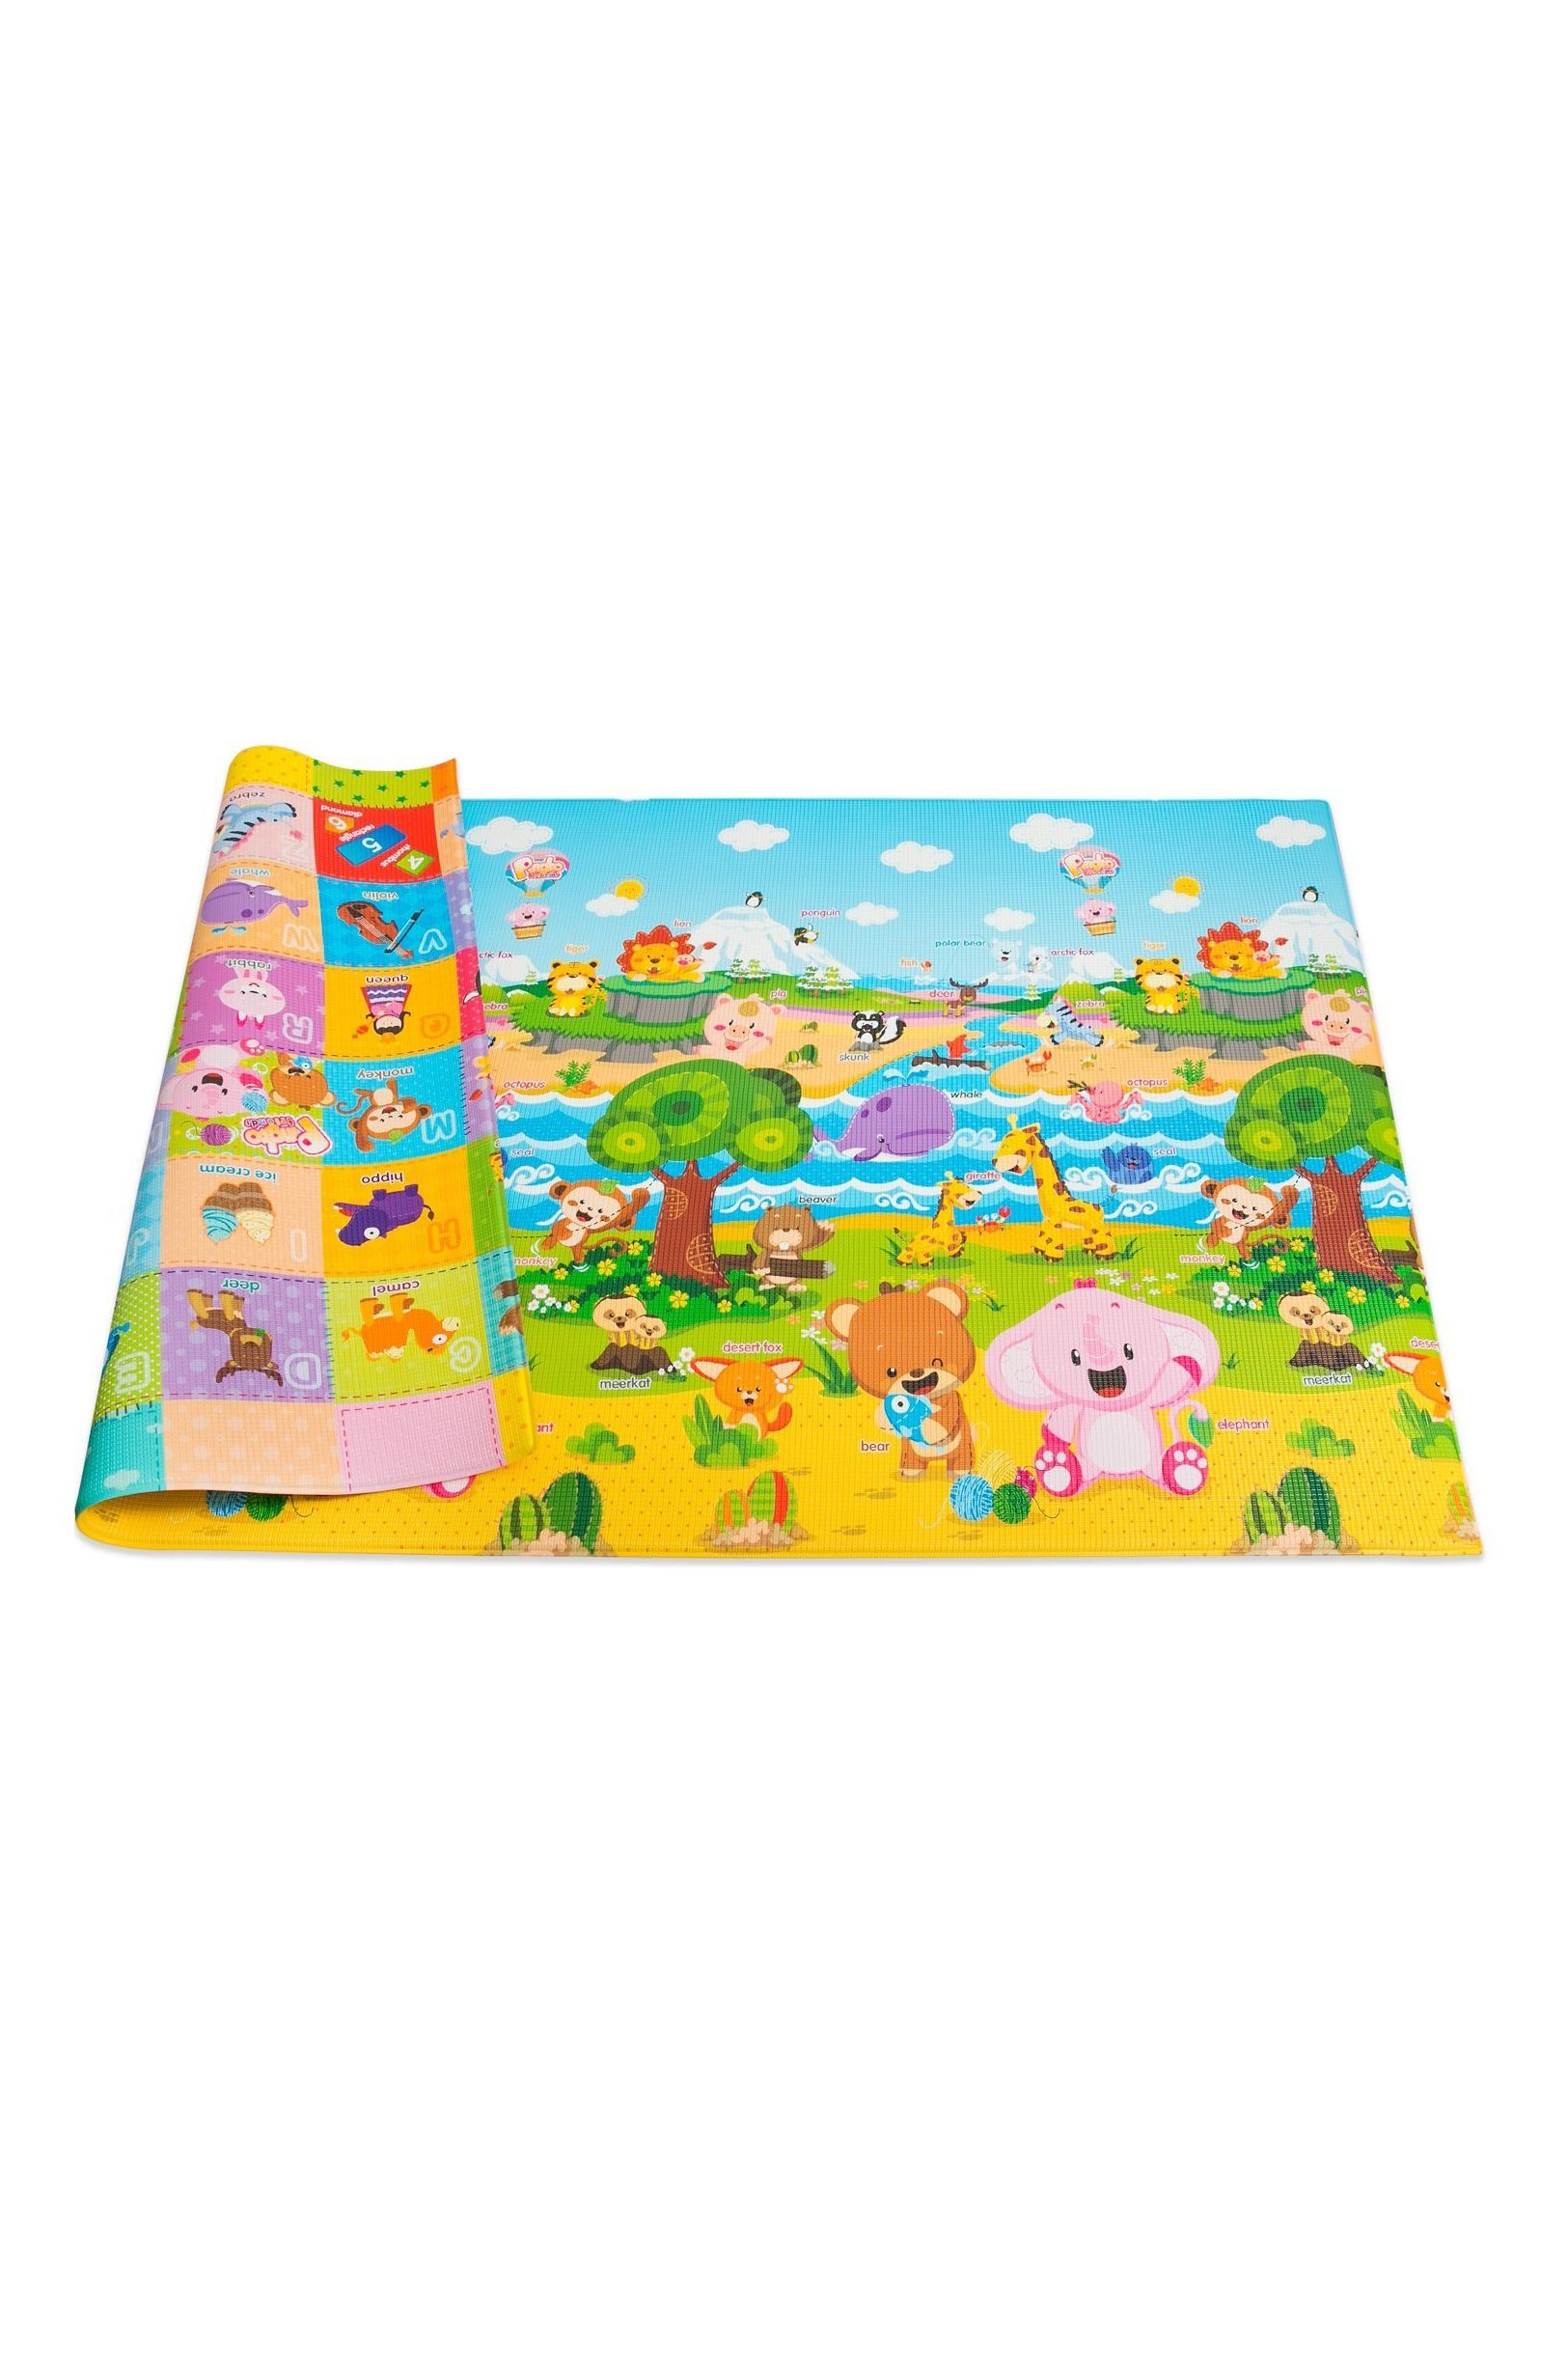 new toddlers mats childrens canada s for our blog polka children play playmats mat